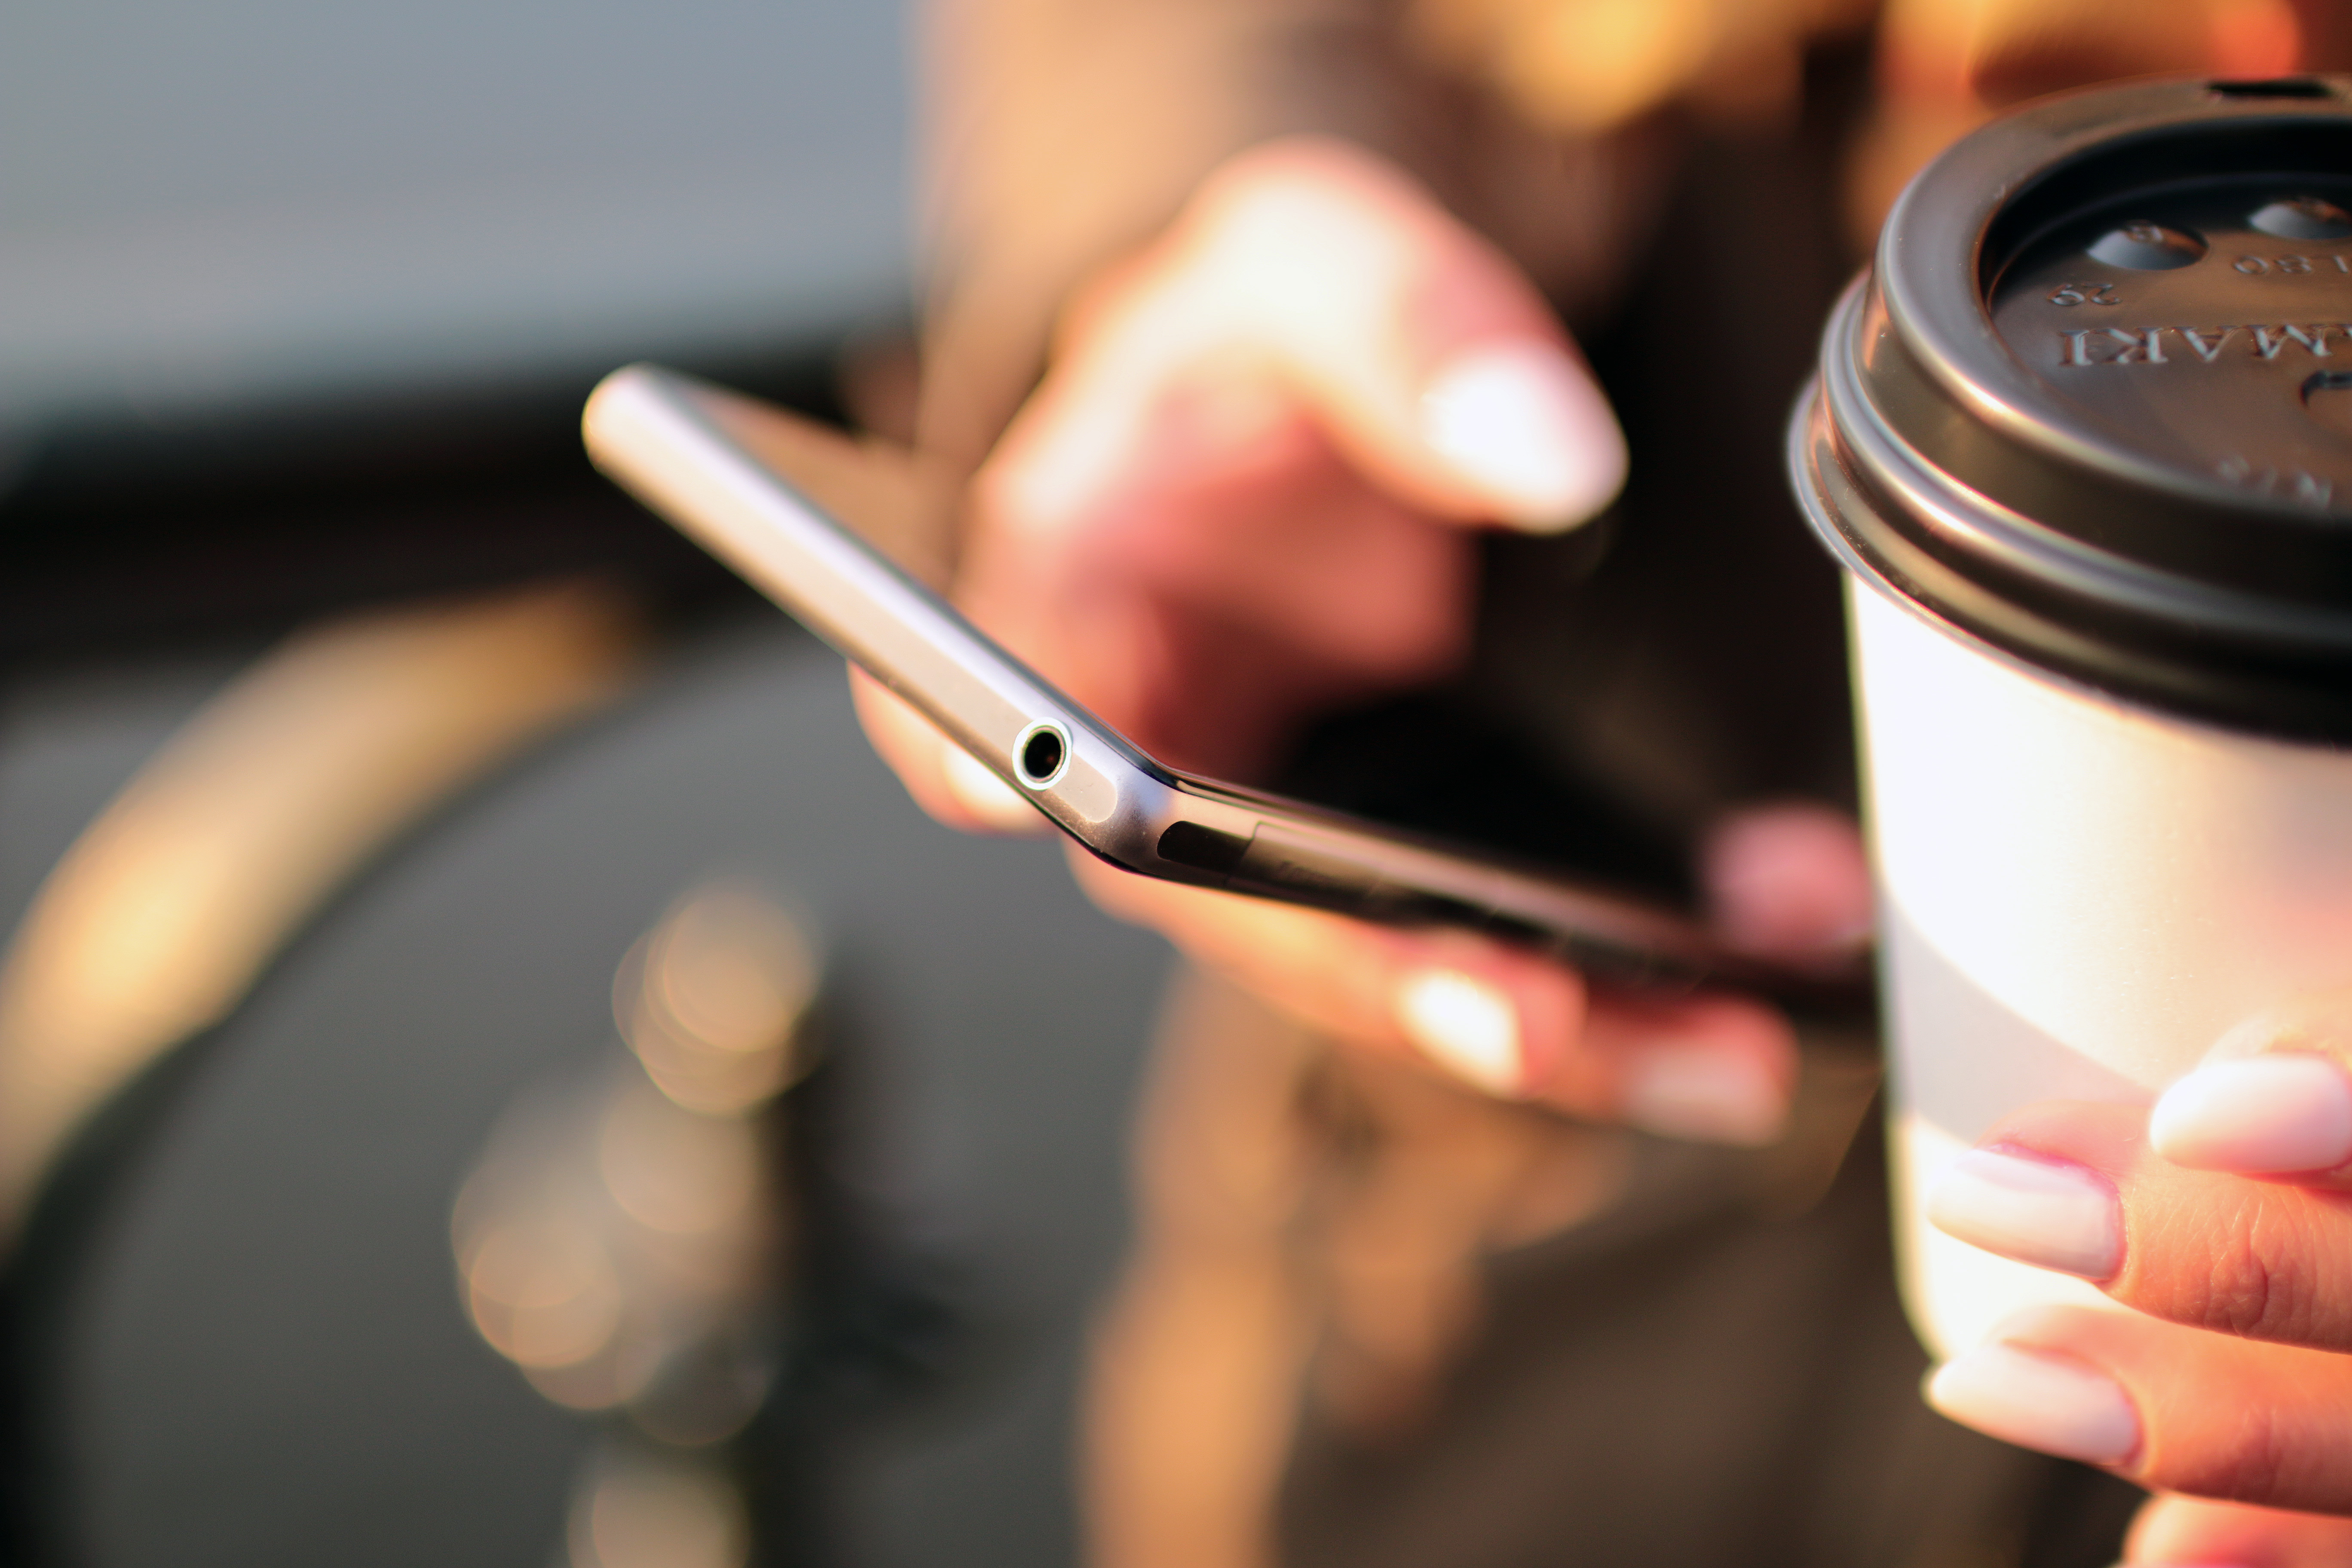 Ensure your lead generation emails are mobile-friendly with the support of an inbound marketing partner